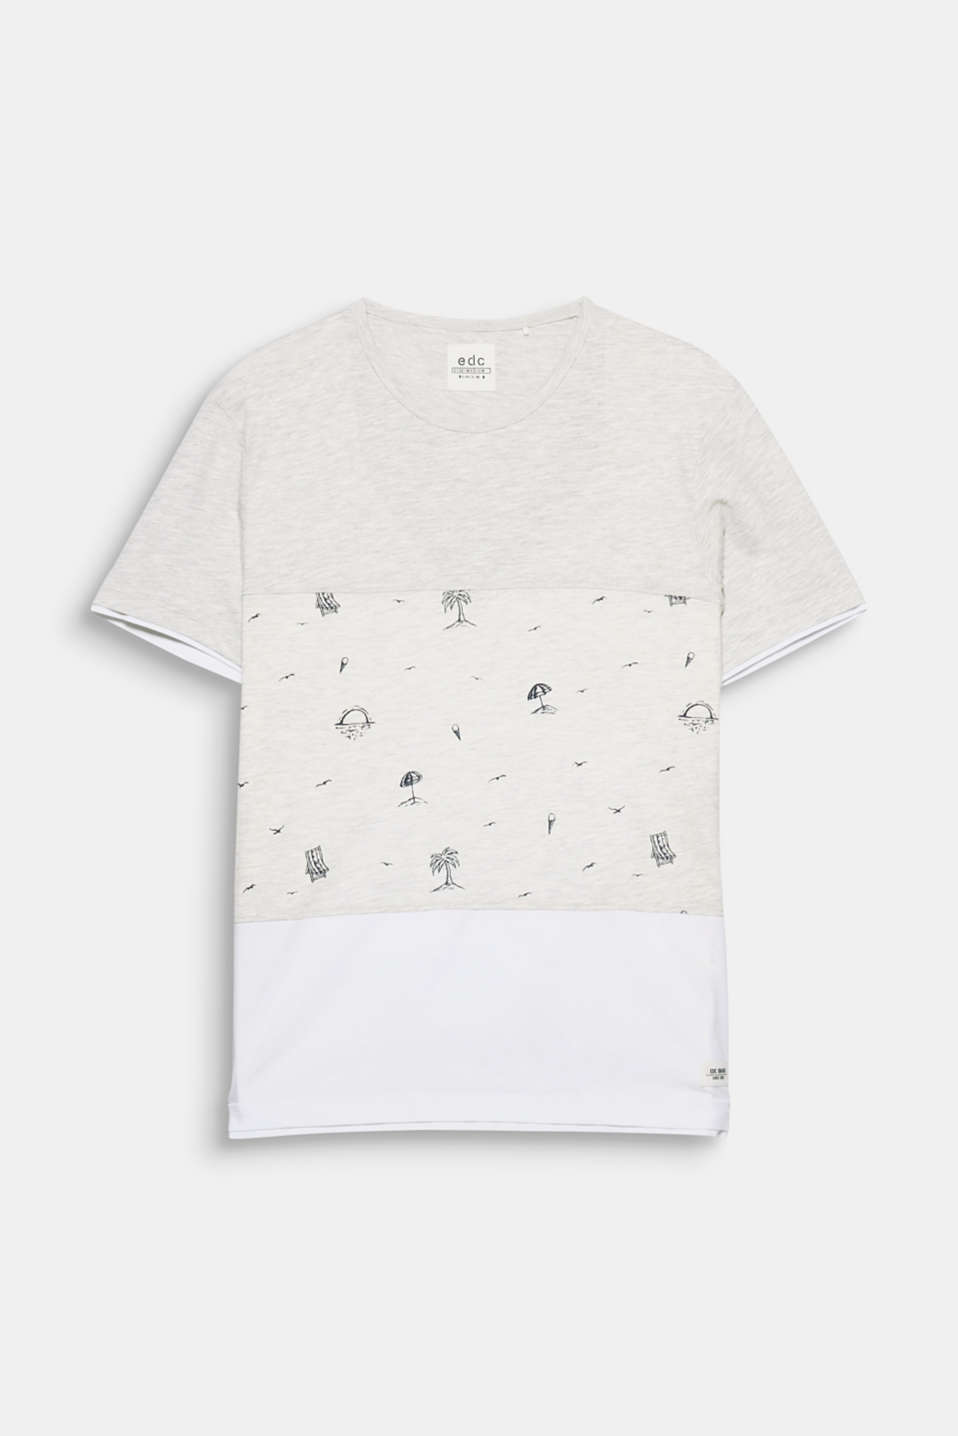 We can hardly wait for summer! And the charming, small prints on this T-shirt are getting us in exactly the right mood.